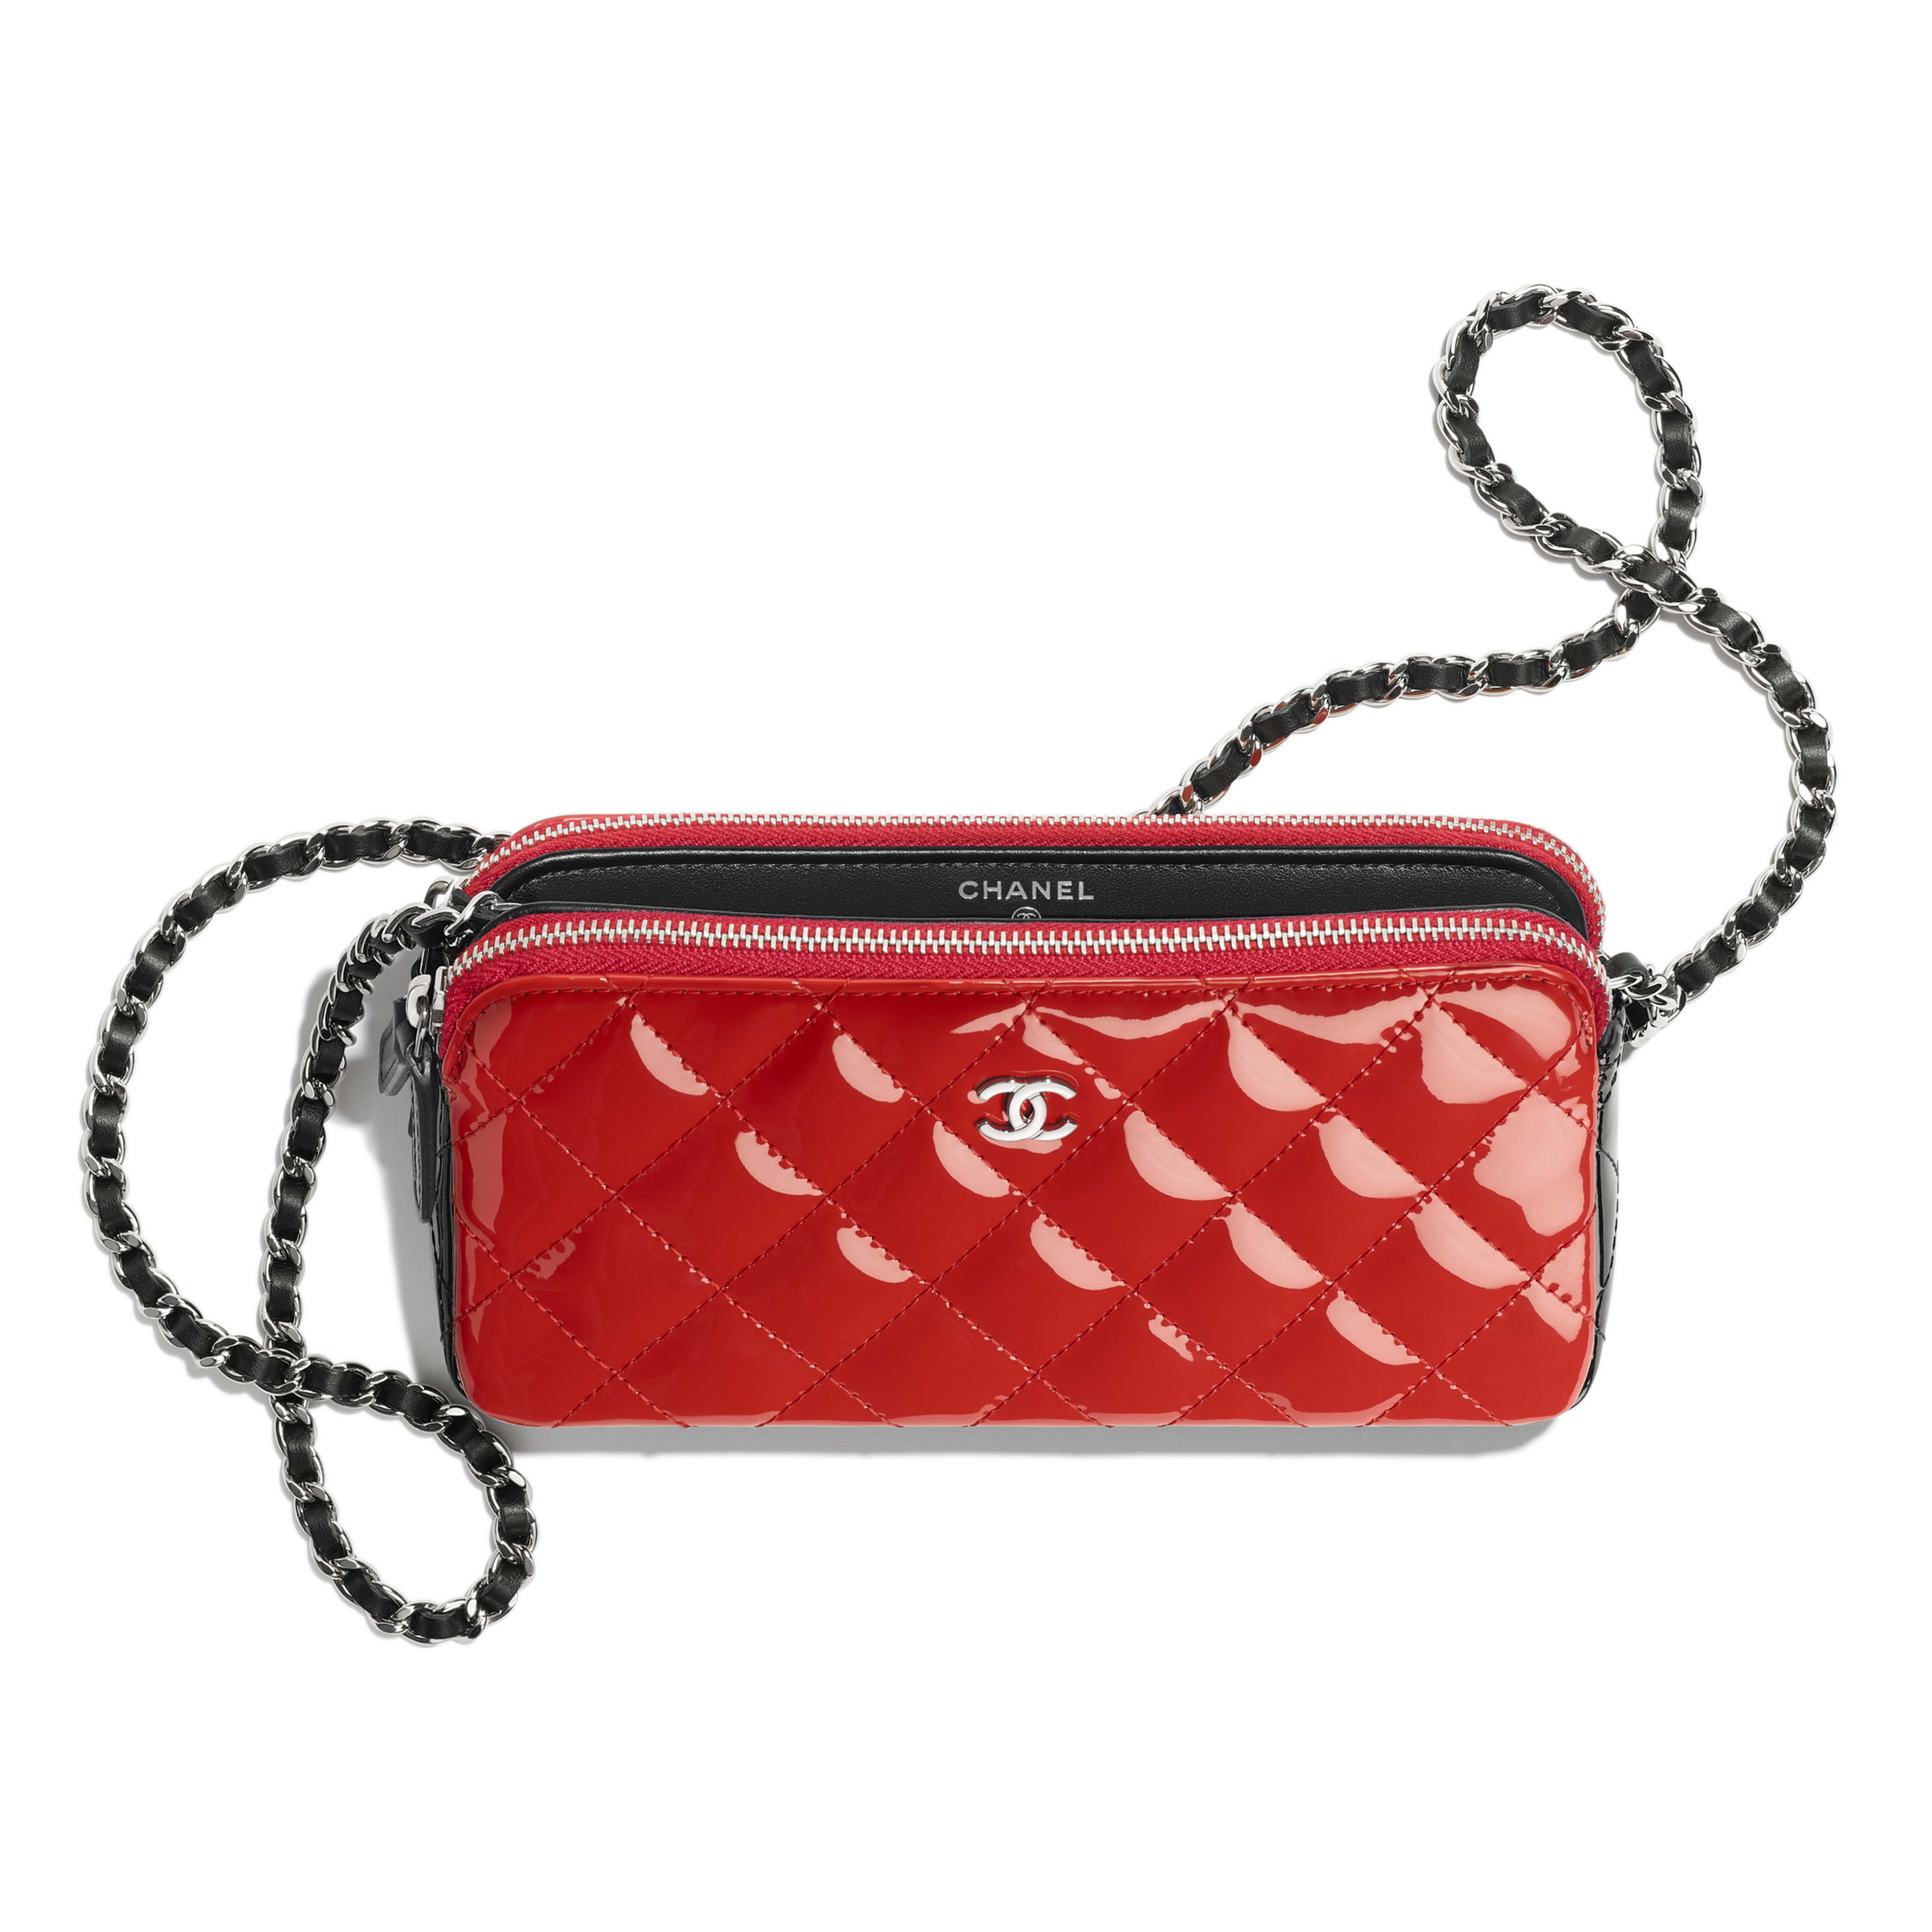 Classic Clutch With Chain - Red & Black - Patent Calfskin - Other view - see full sized version